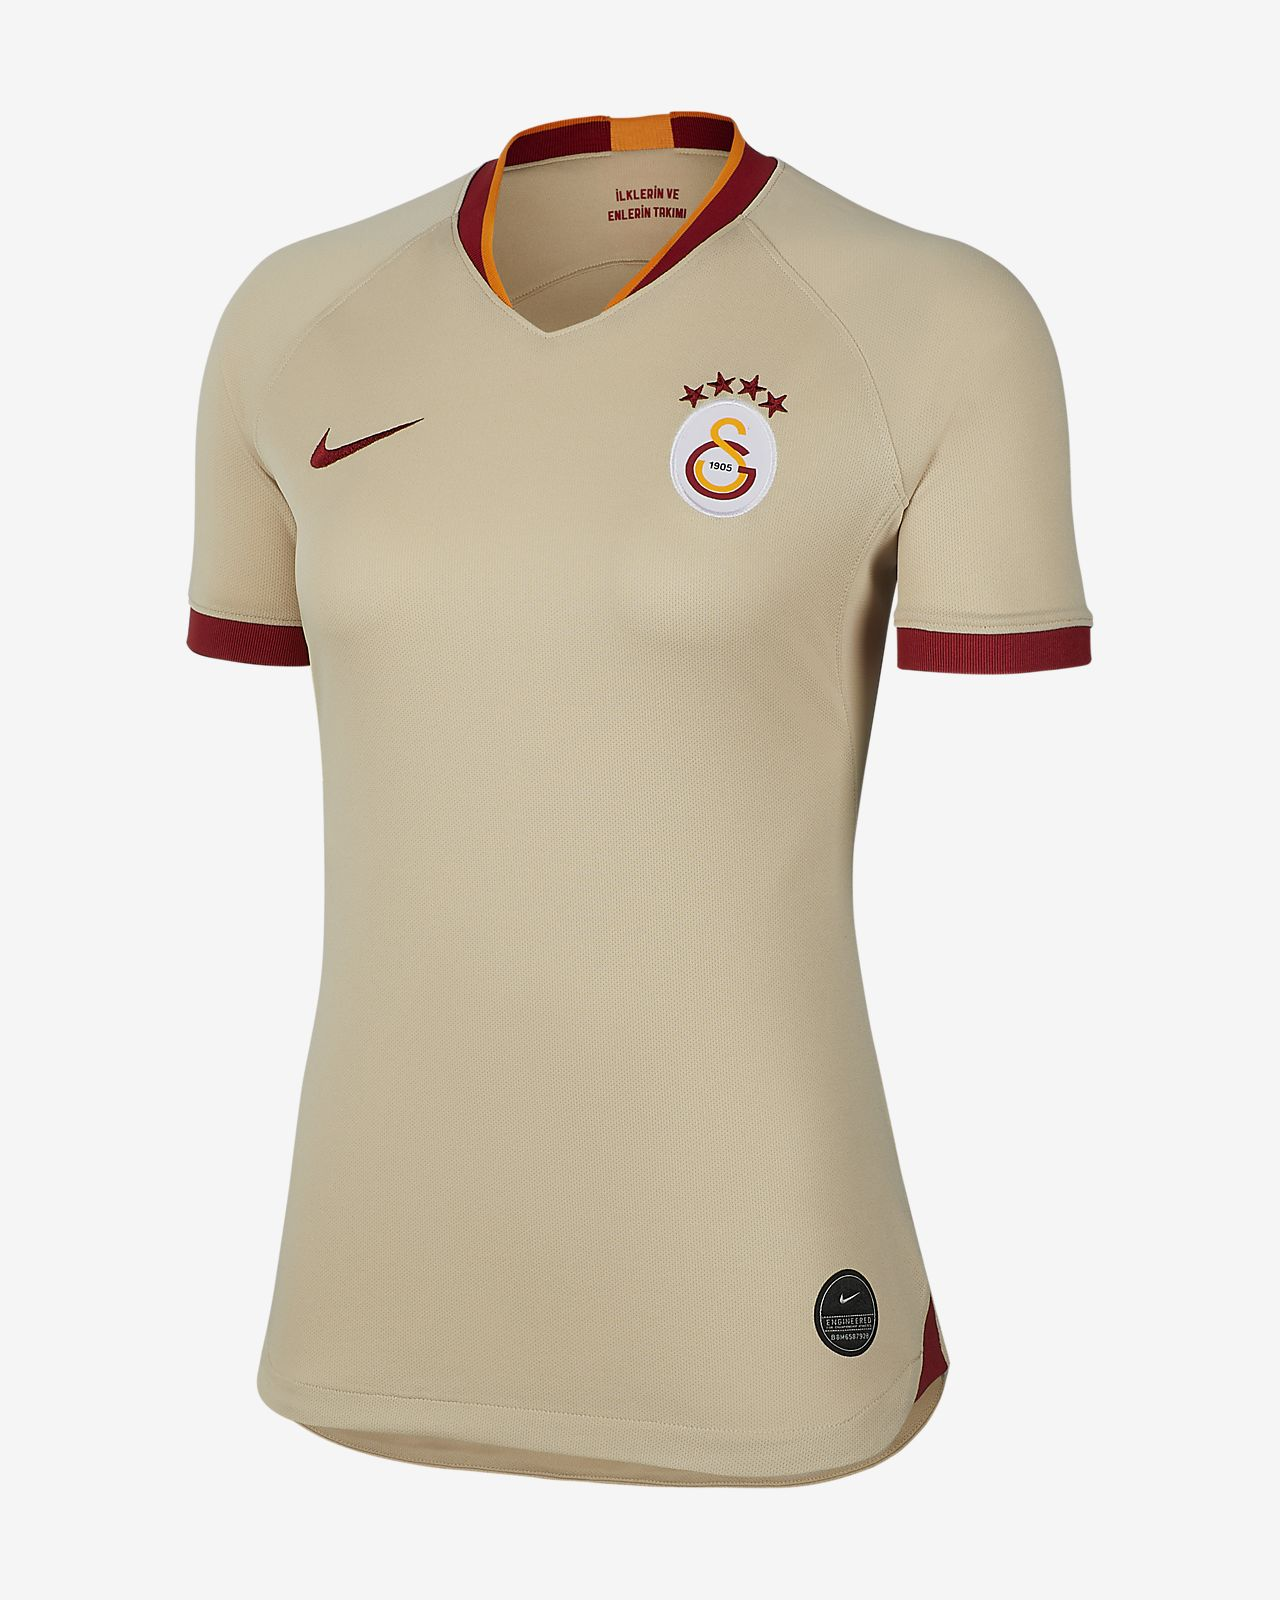 Maillot de football Galatasaray 2019/20 Stadium Away pour Femme